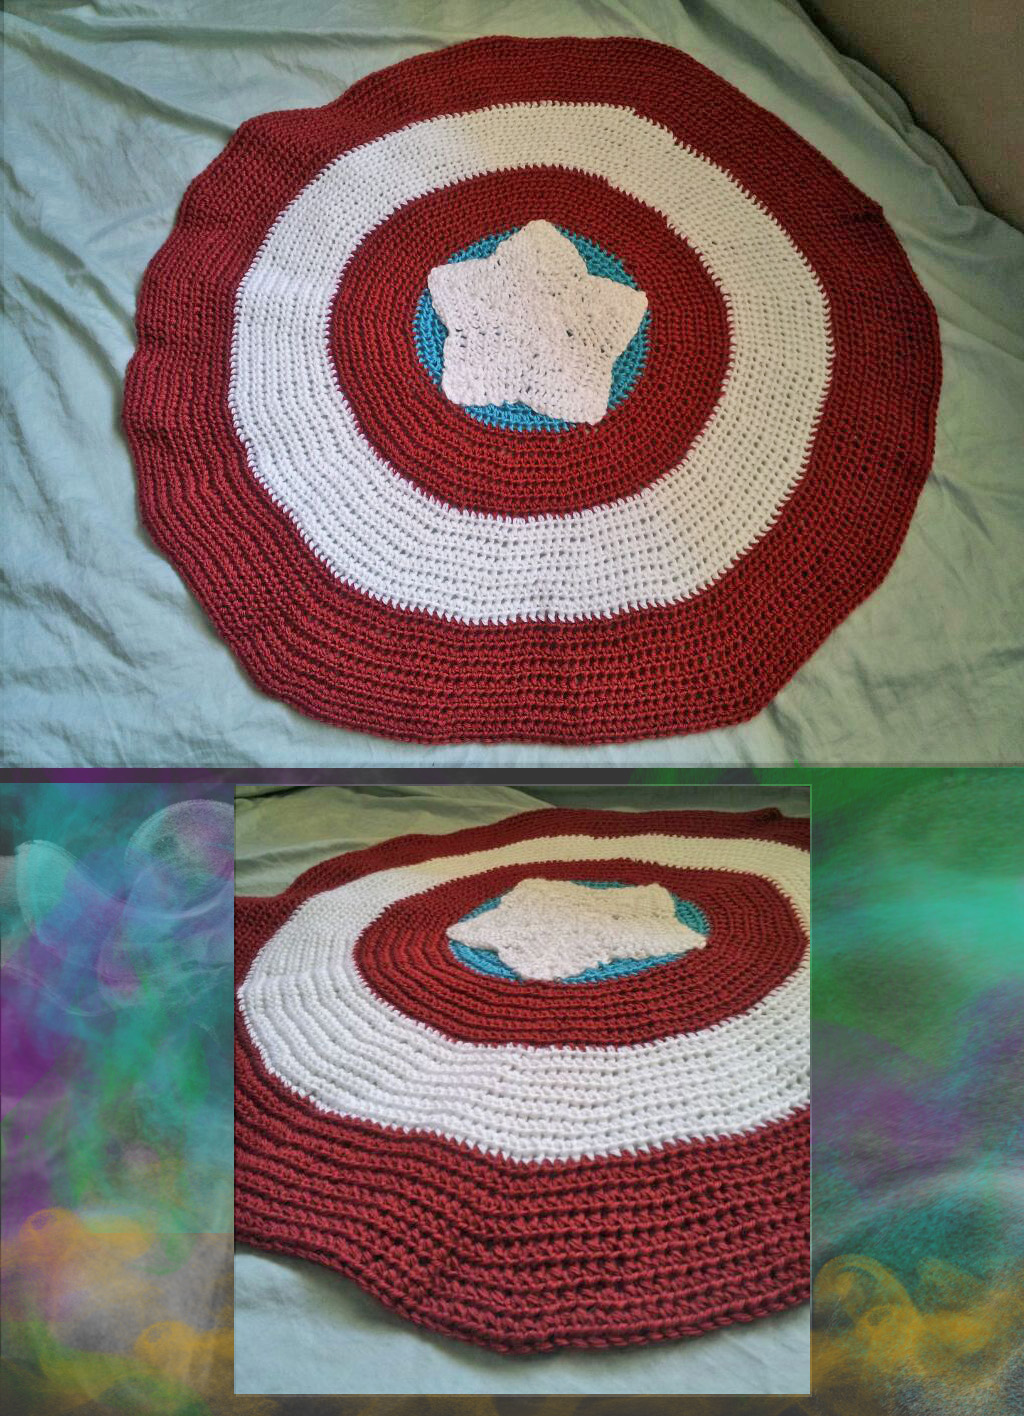 Captain America Shield Crocheted Baby Blanket by chibipan222